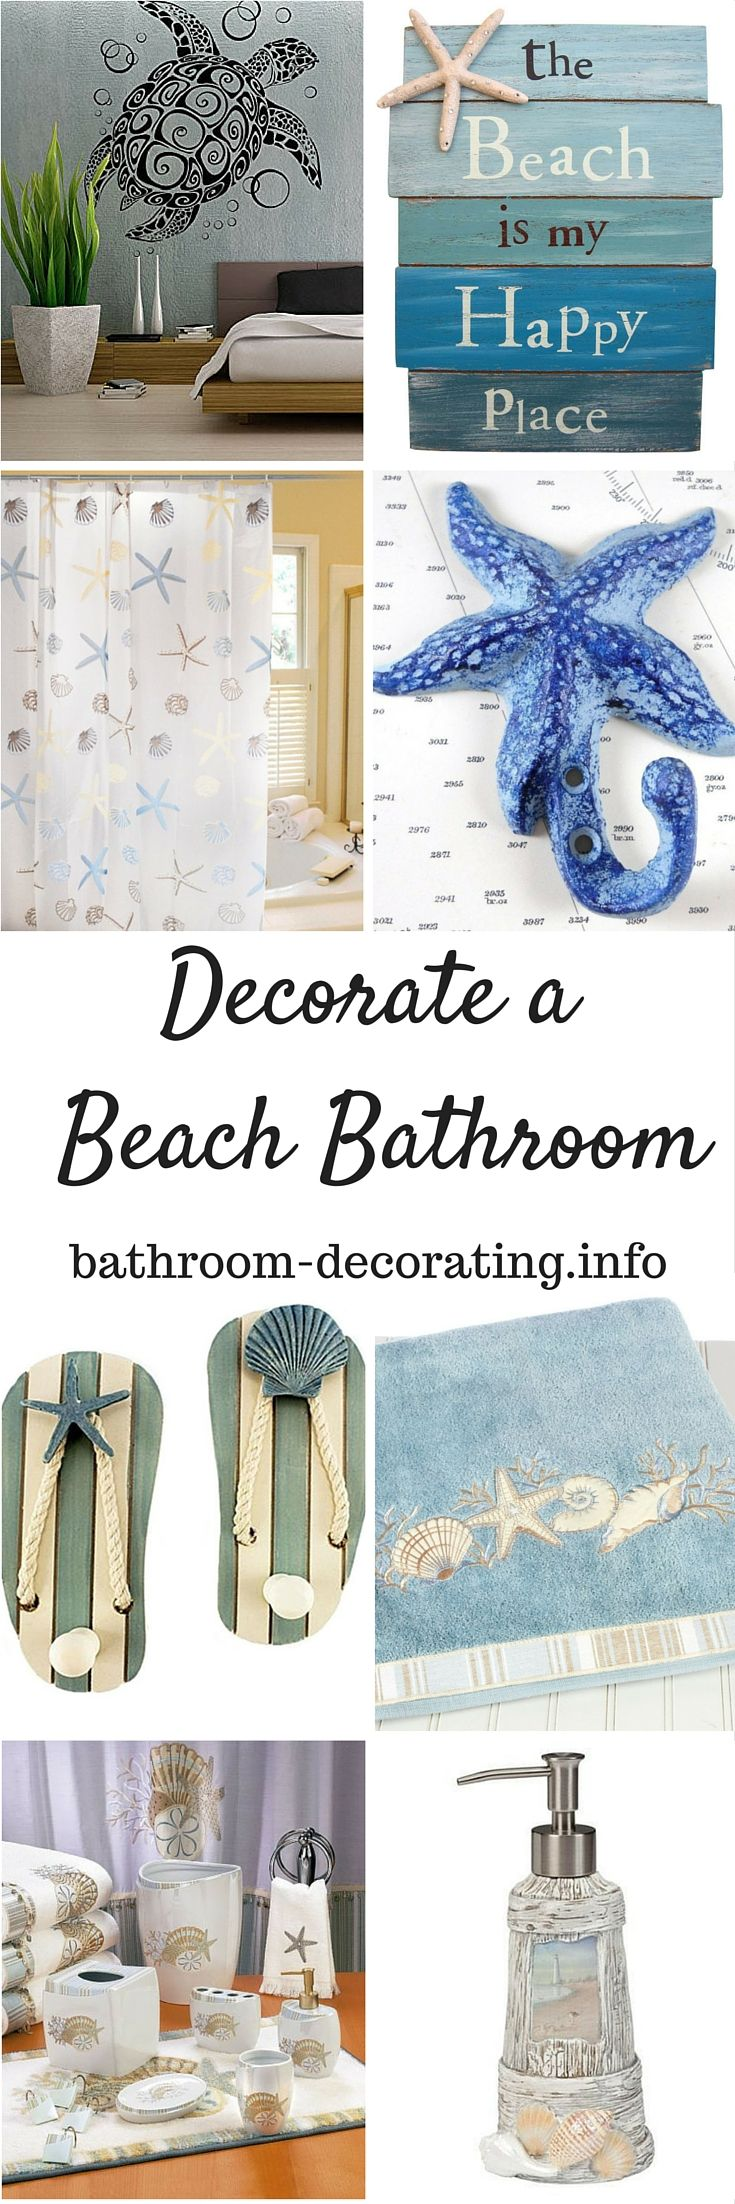 Decorate a Beach Bathroom